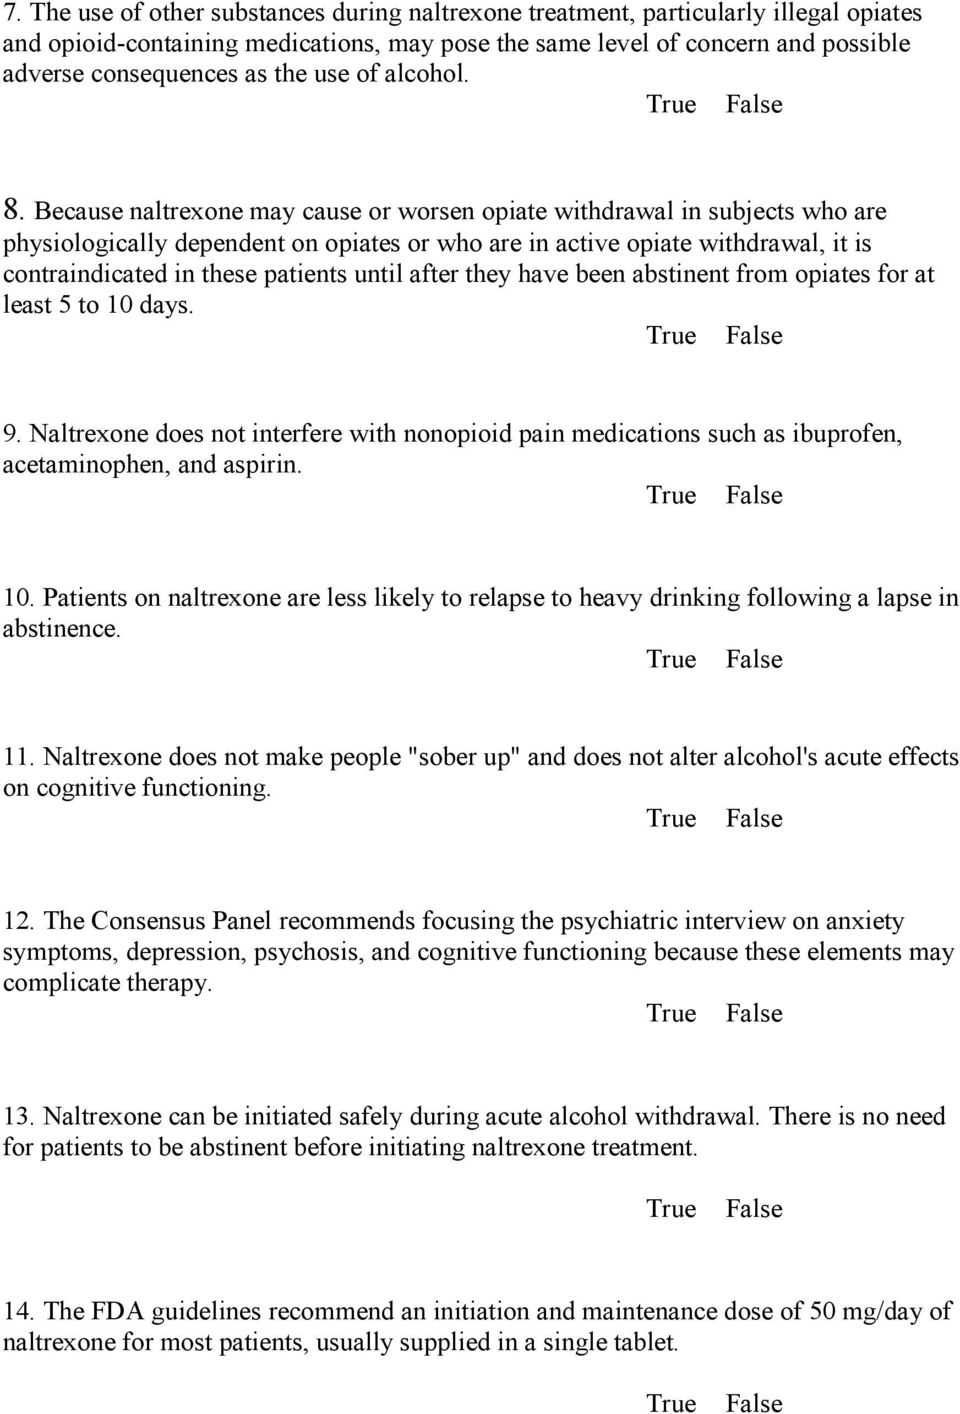 Because naltrexone may cause or worsen opiate withdrawal in subjects who are physiologically dependent on opiates or who are in active opiate withdrawal, it is contraindicated in these patients until